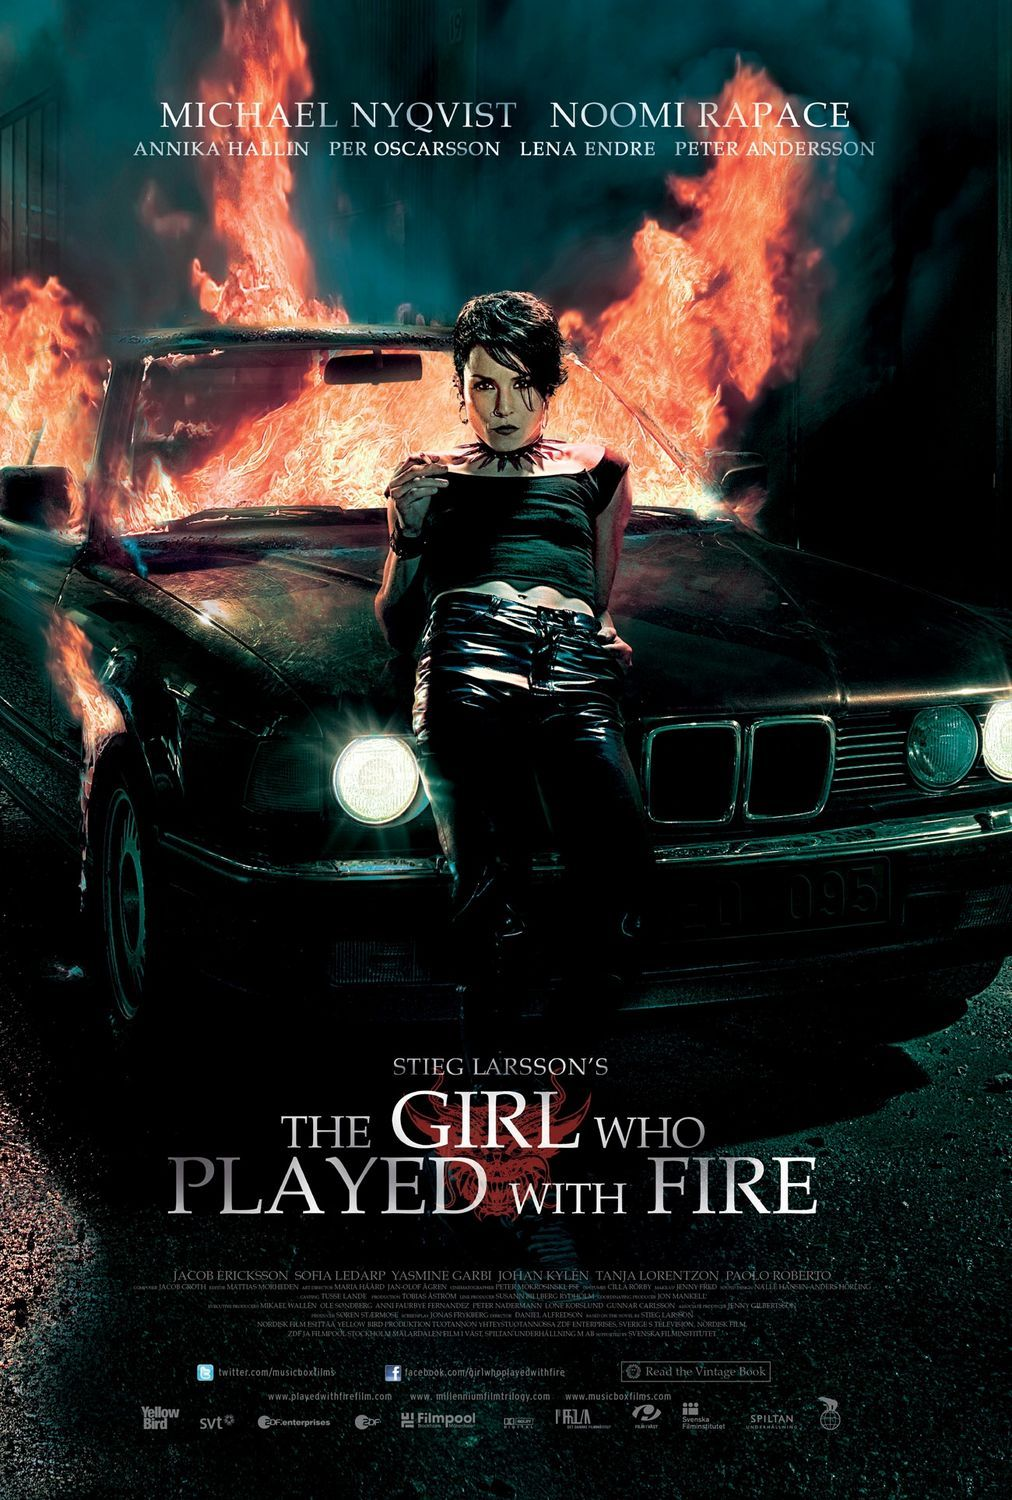 The Girl Who Played with Fire (2009) - IMDb